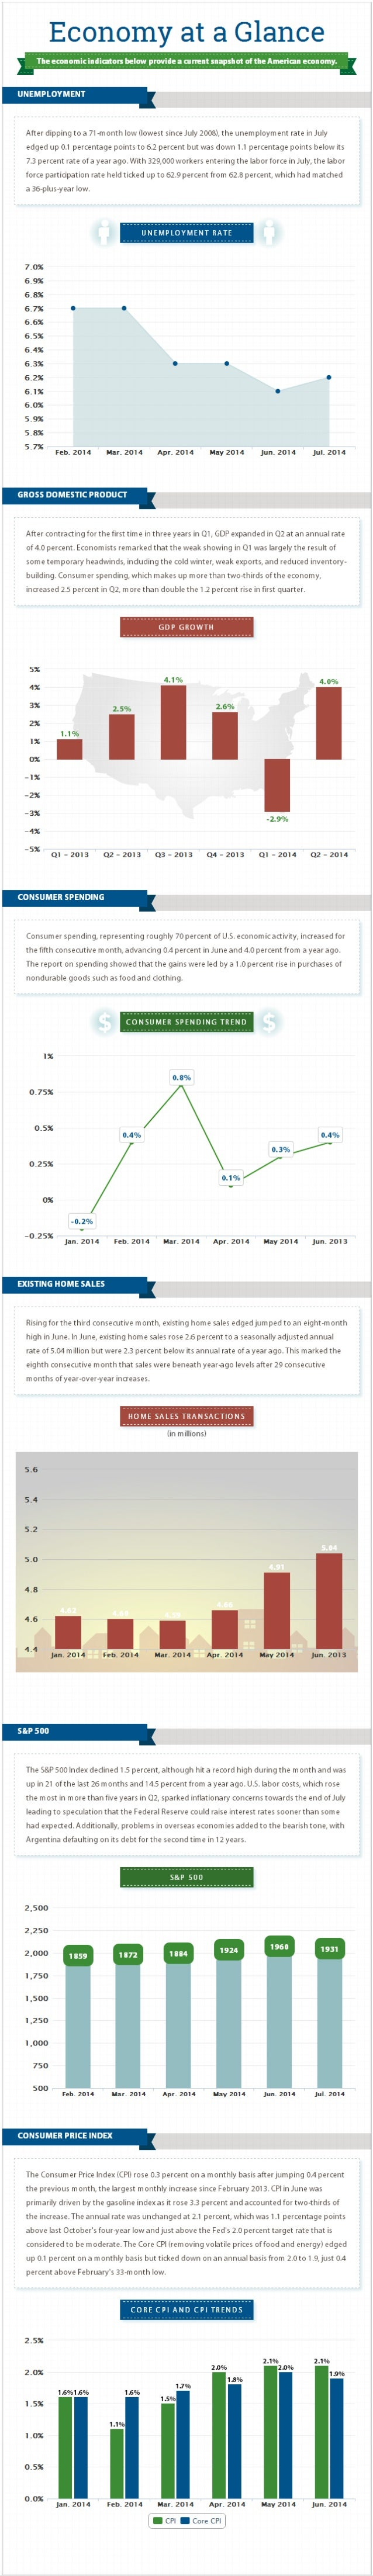 Economy at a Glance: August 2014 [Infographic]